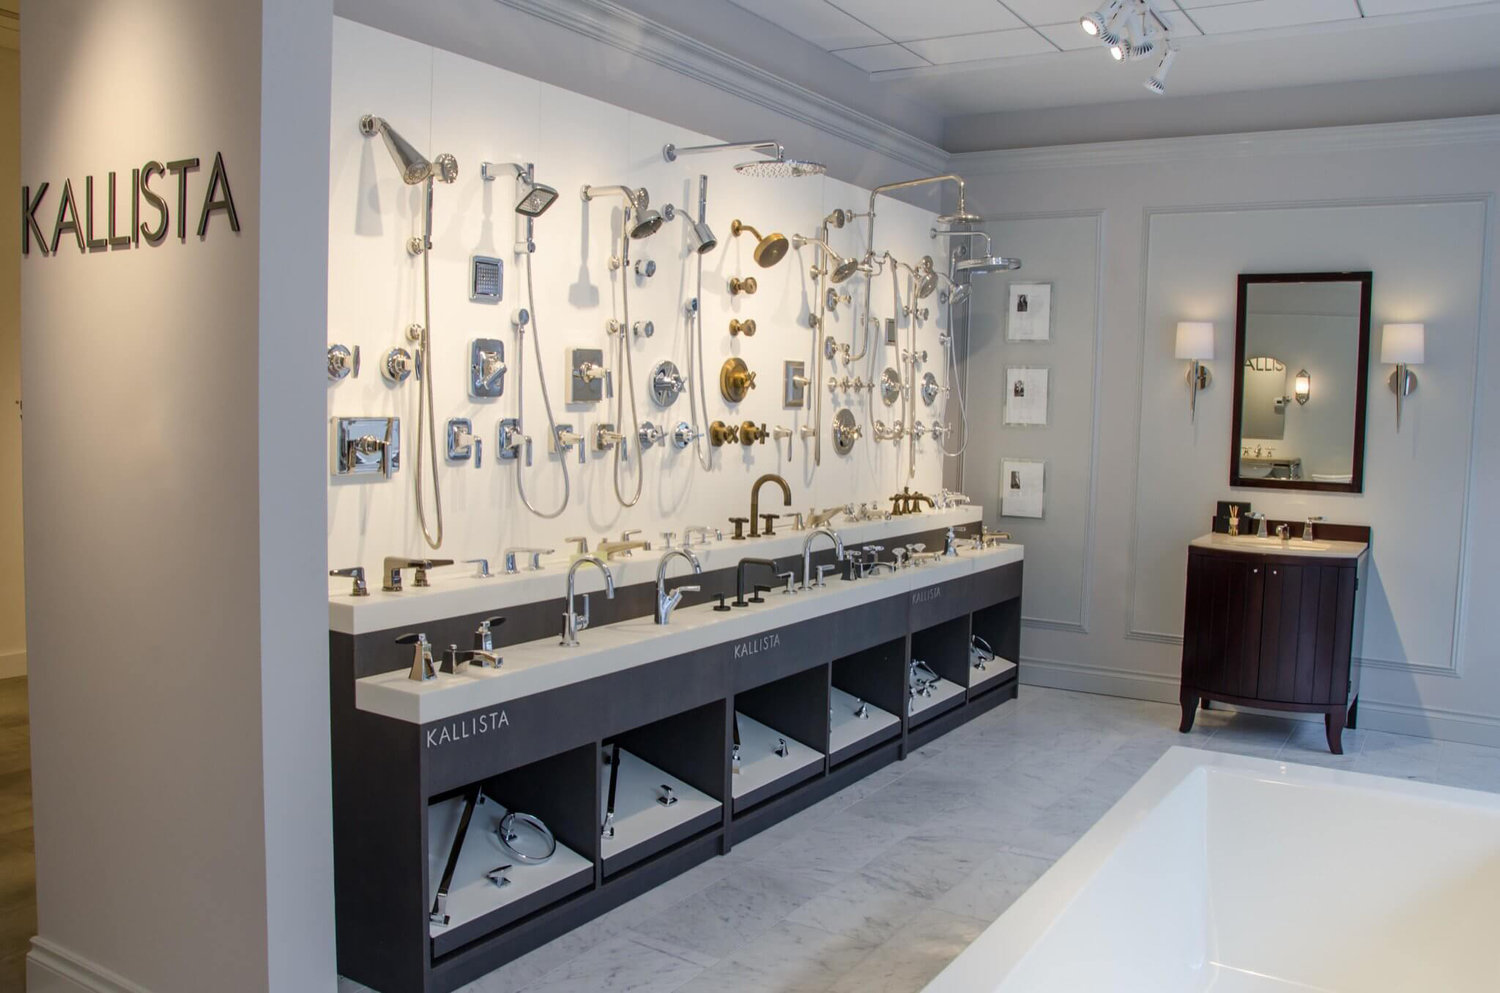 showroom display for kallista s faucets and fixtures conceptworks